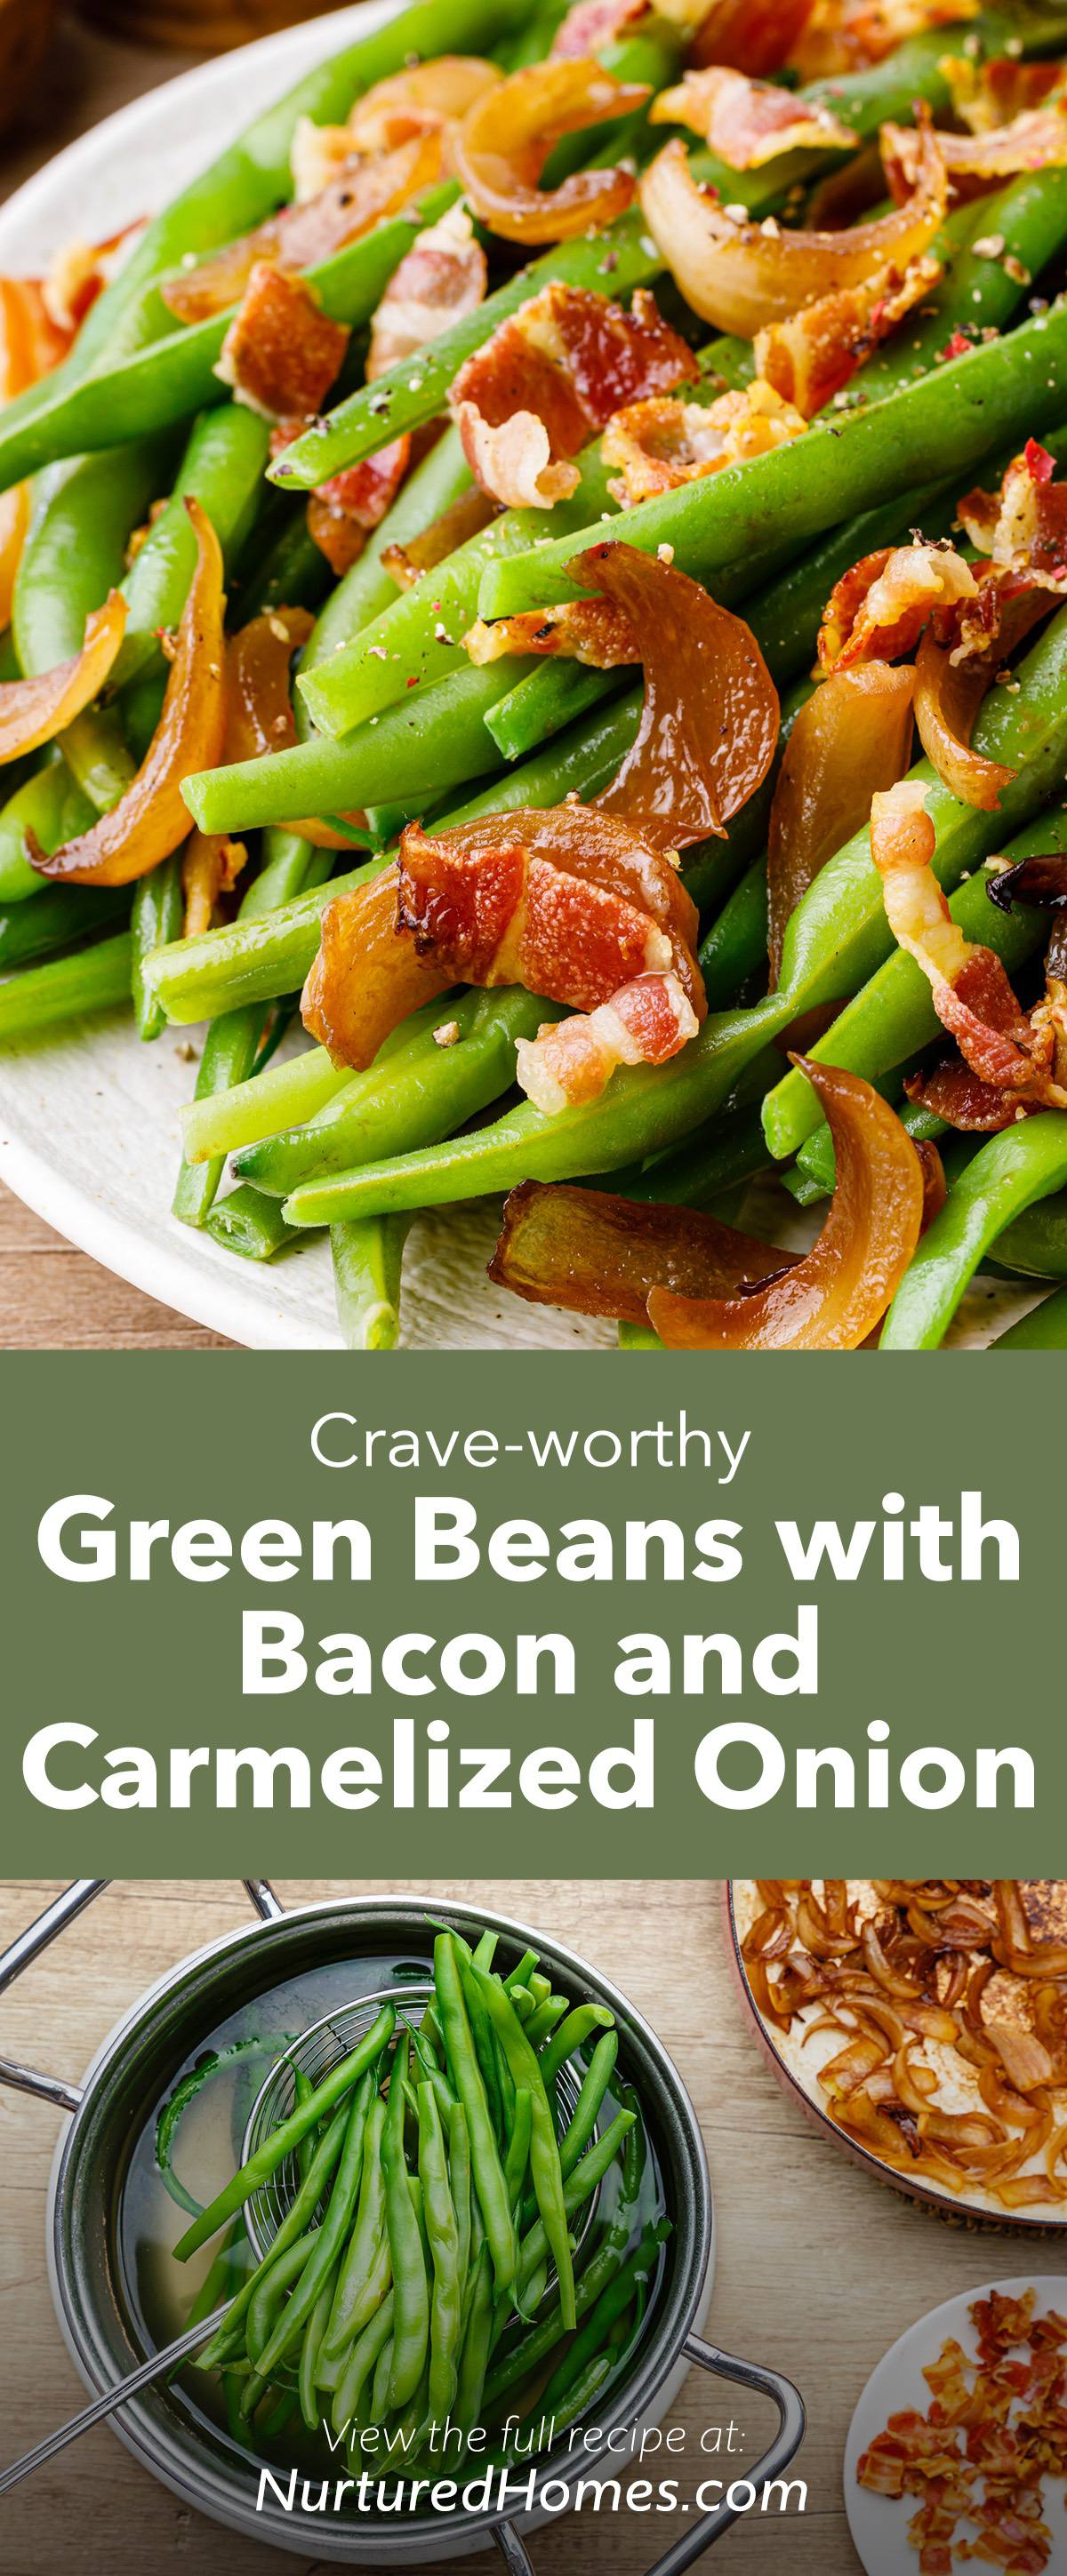 Crave-worthy Green Beans with Bacon and Caramelized Onions